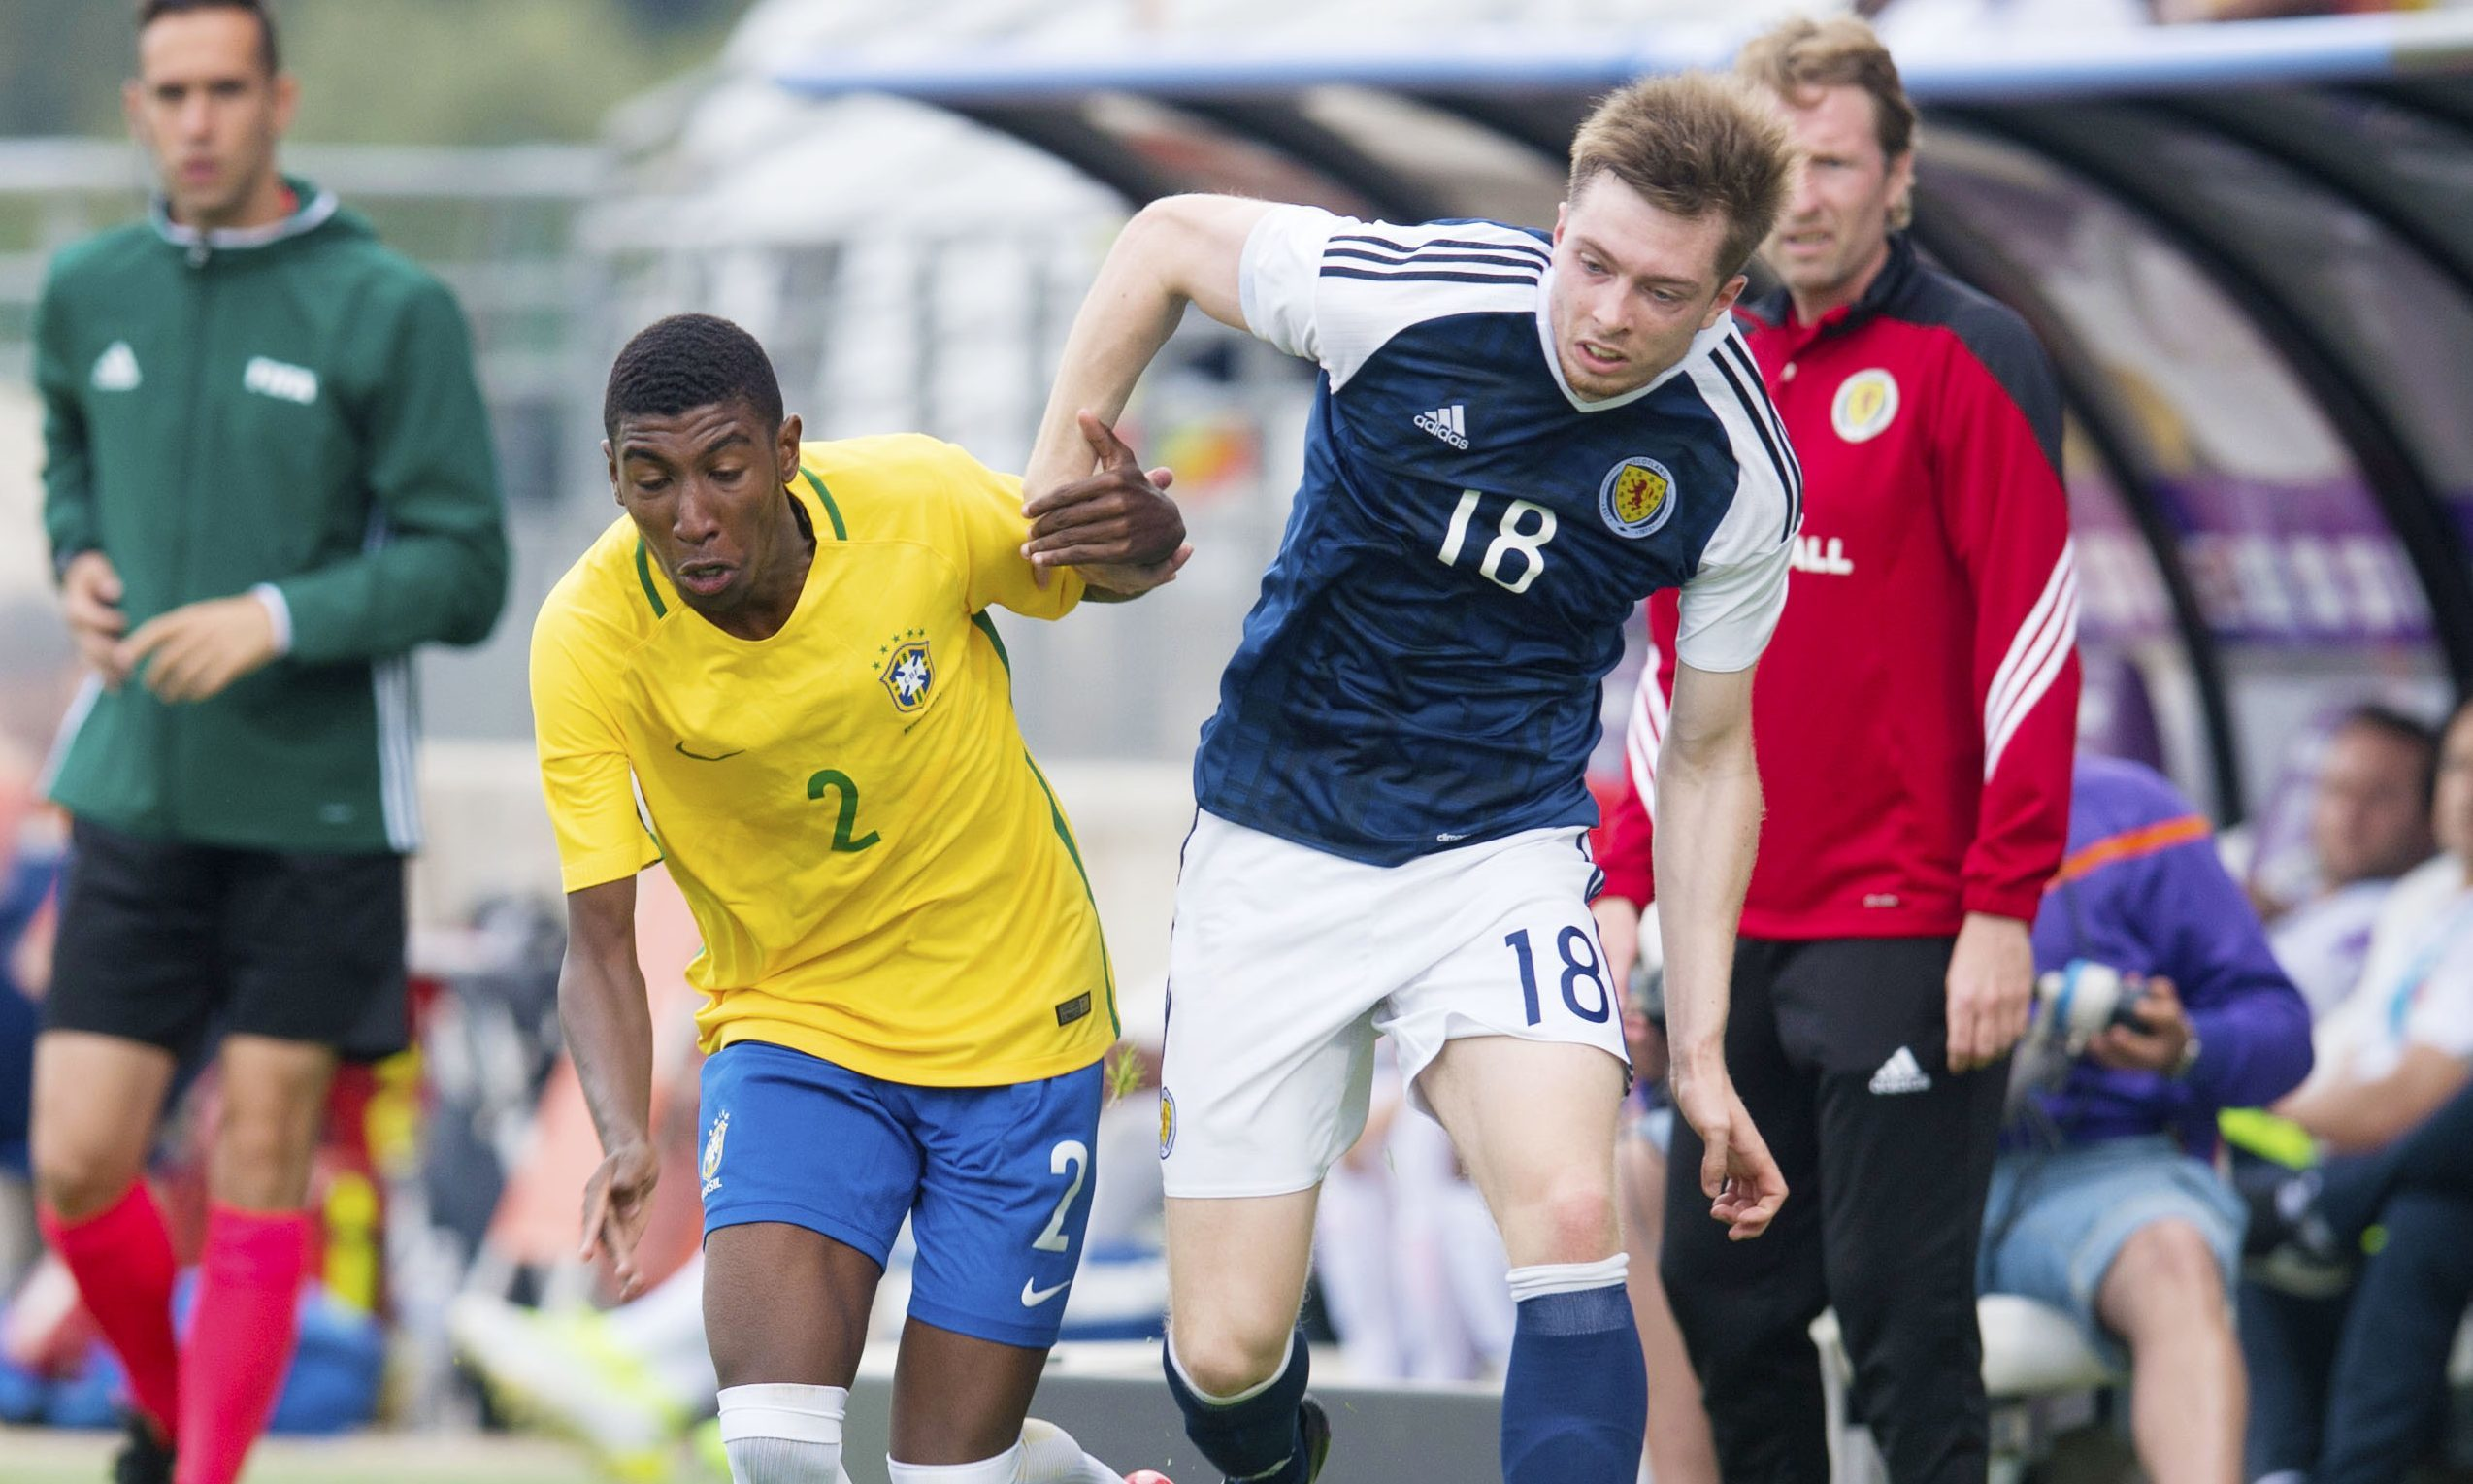 Craig Wighton tussles with Junior Emerson during Scotland's 1-0 win over Brazil in the Toulon Tournament.